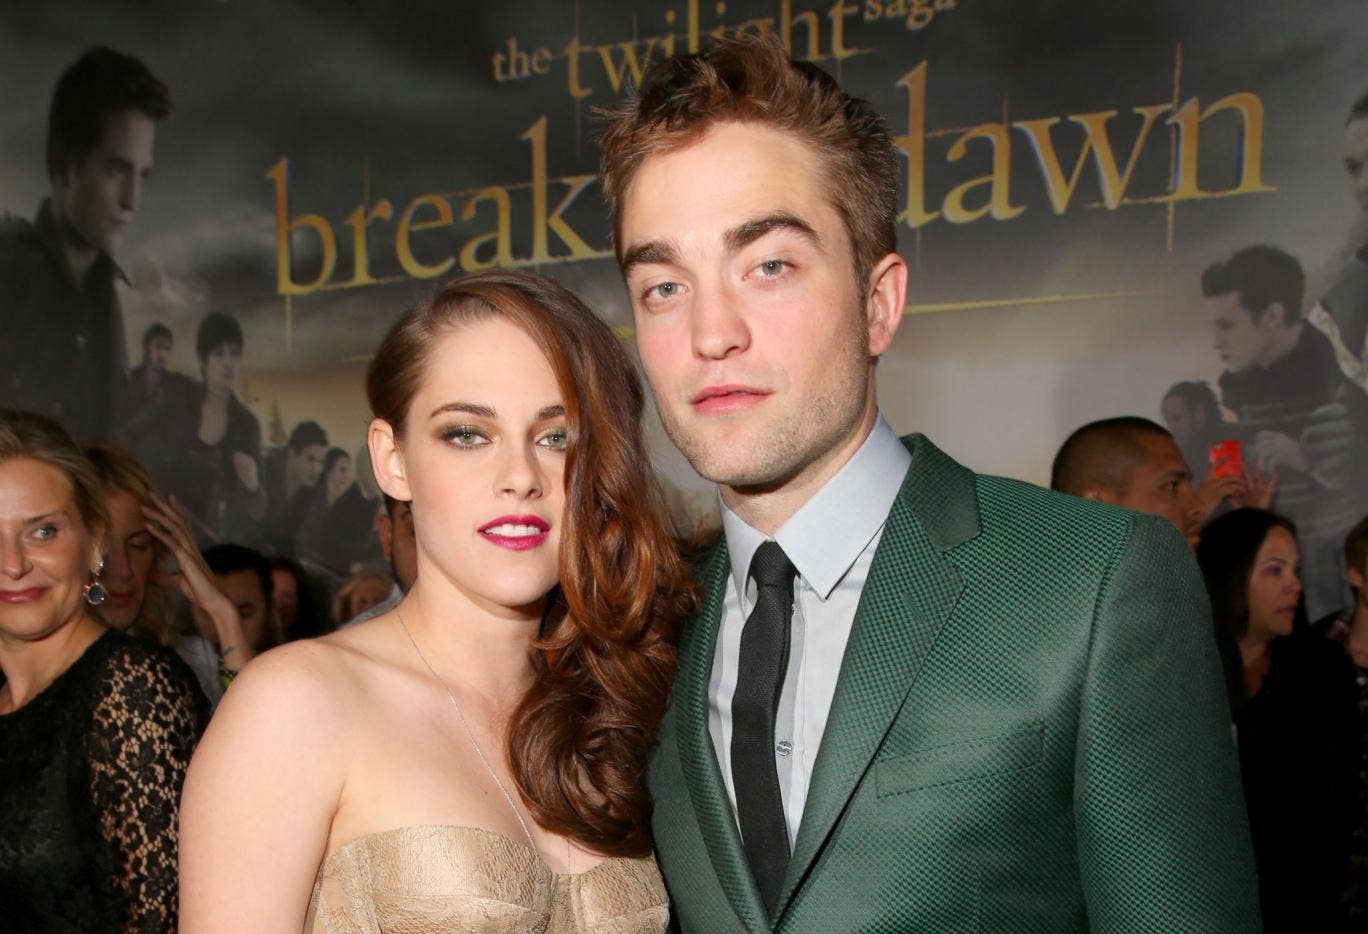 Robert Pattinson with ex-girlfriend Kristen Stewart